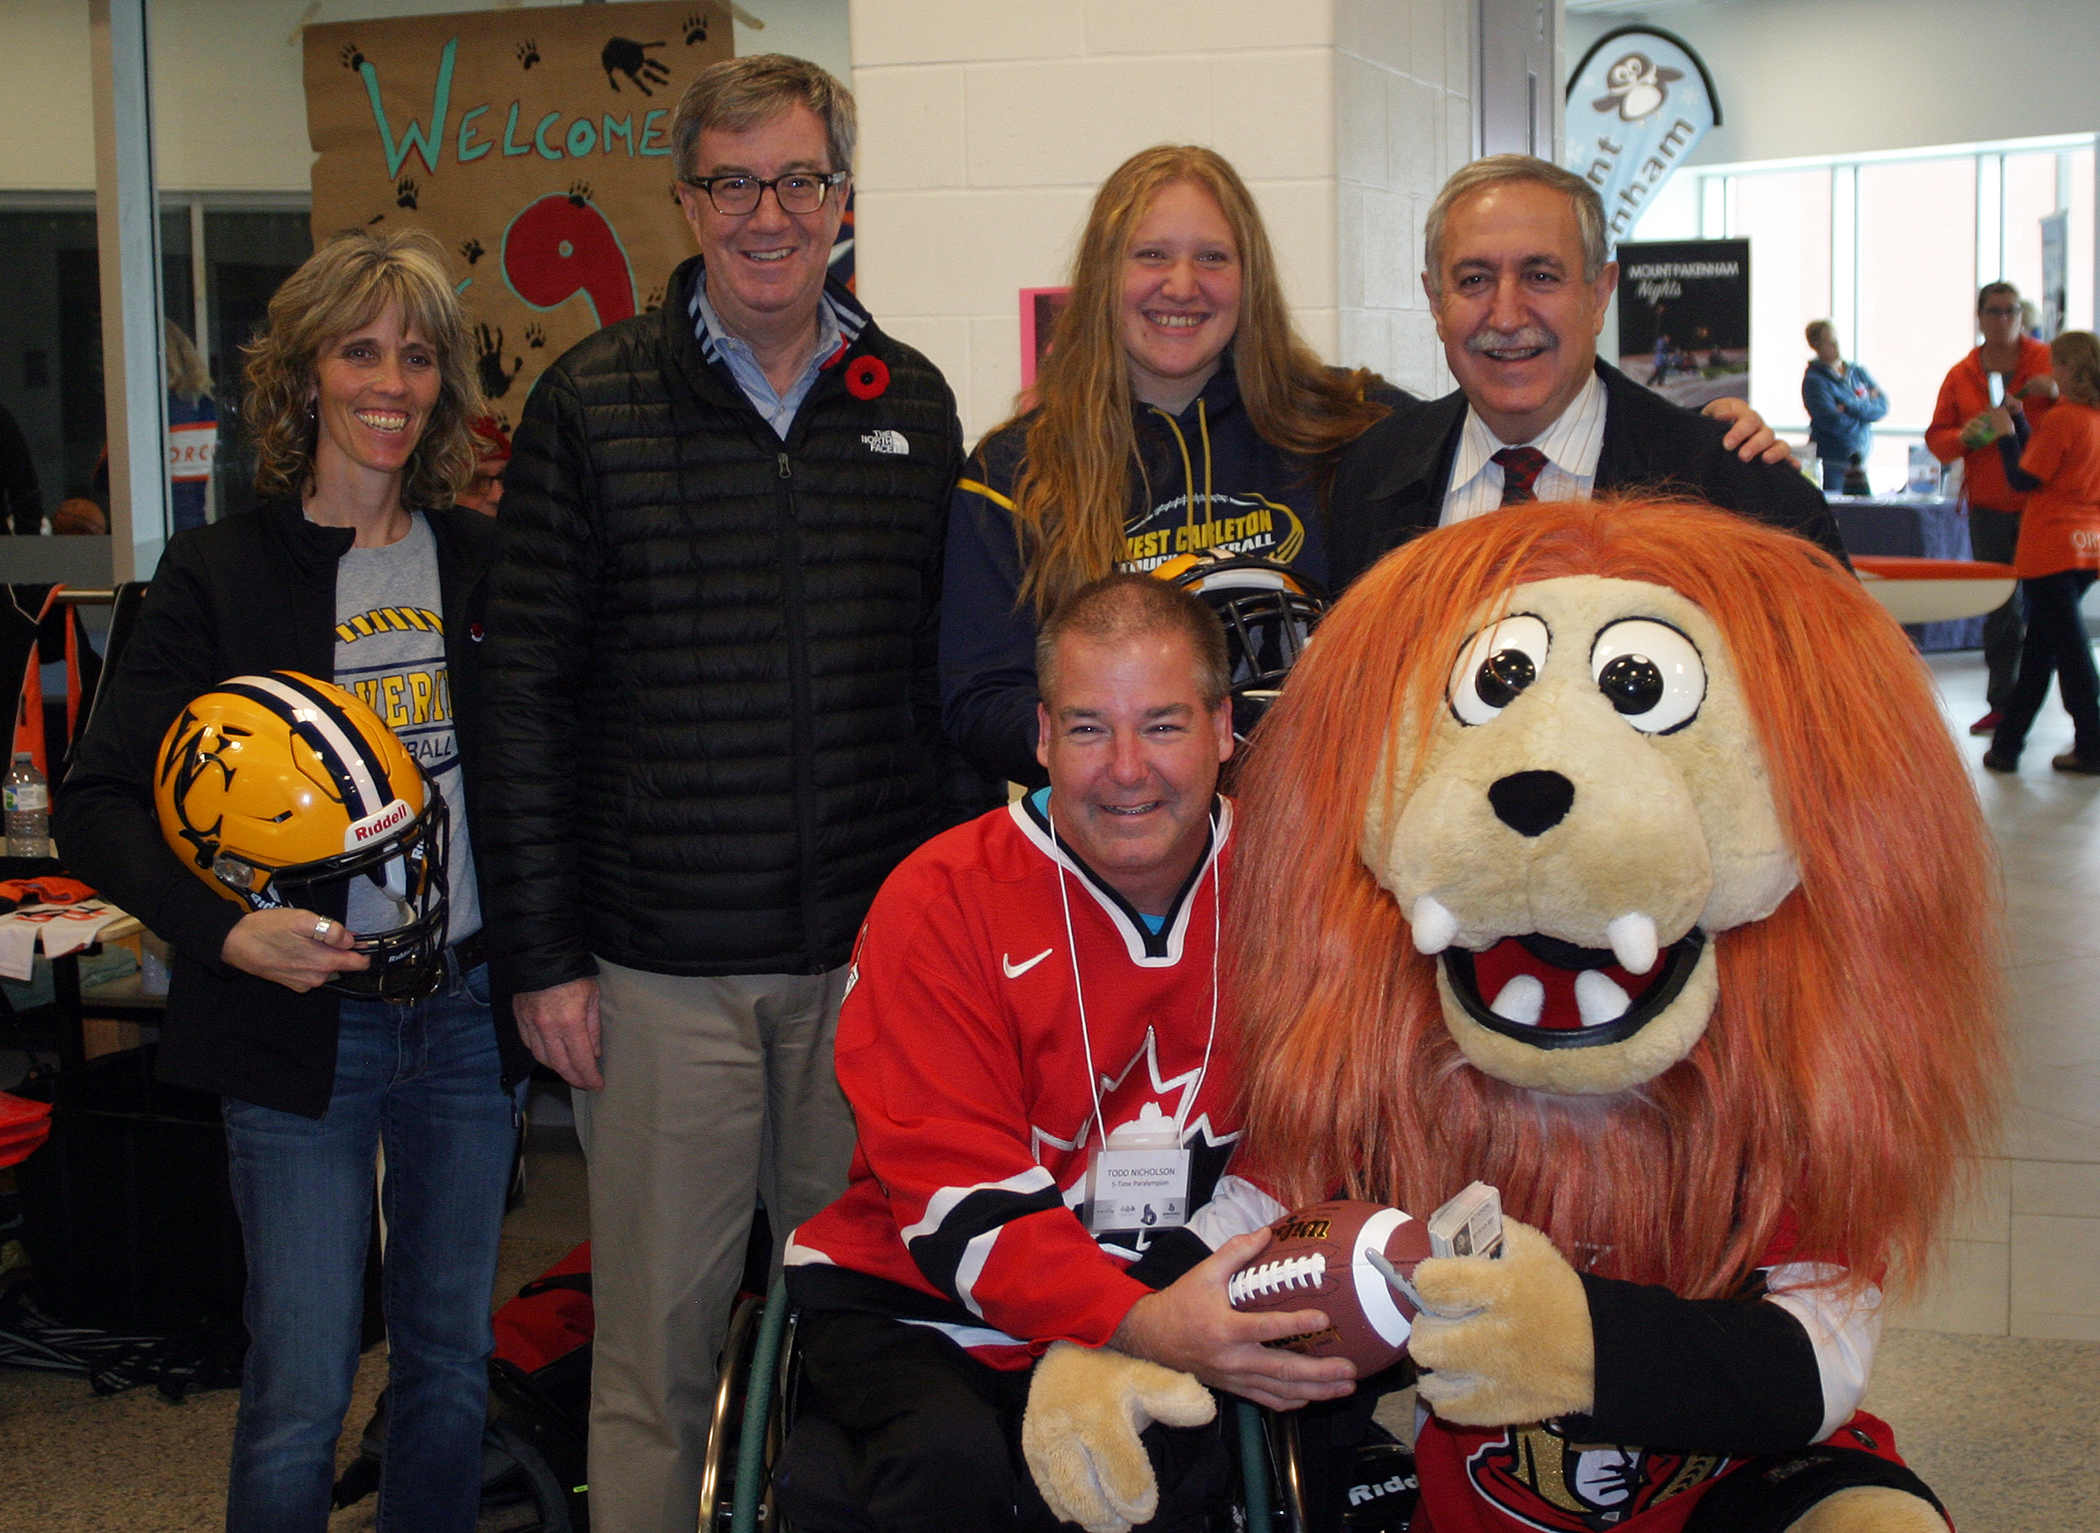 From left, West Carleton Wolverine's Natalie McArdle, Mayor Jim Watson, Wolverine B Cup winner Brooke Bean, Coun. Eli El-Chantiry and up front Todd Nicholson and Sparty were all at the The Rebuilding Our Communities Through Sport event last Saturday. Photo by Jake Davies